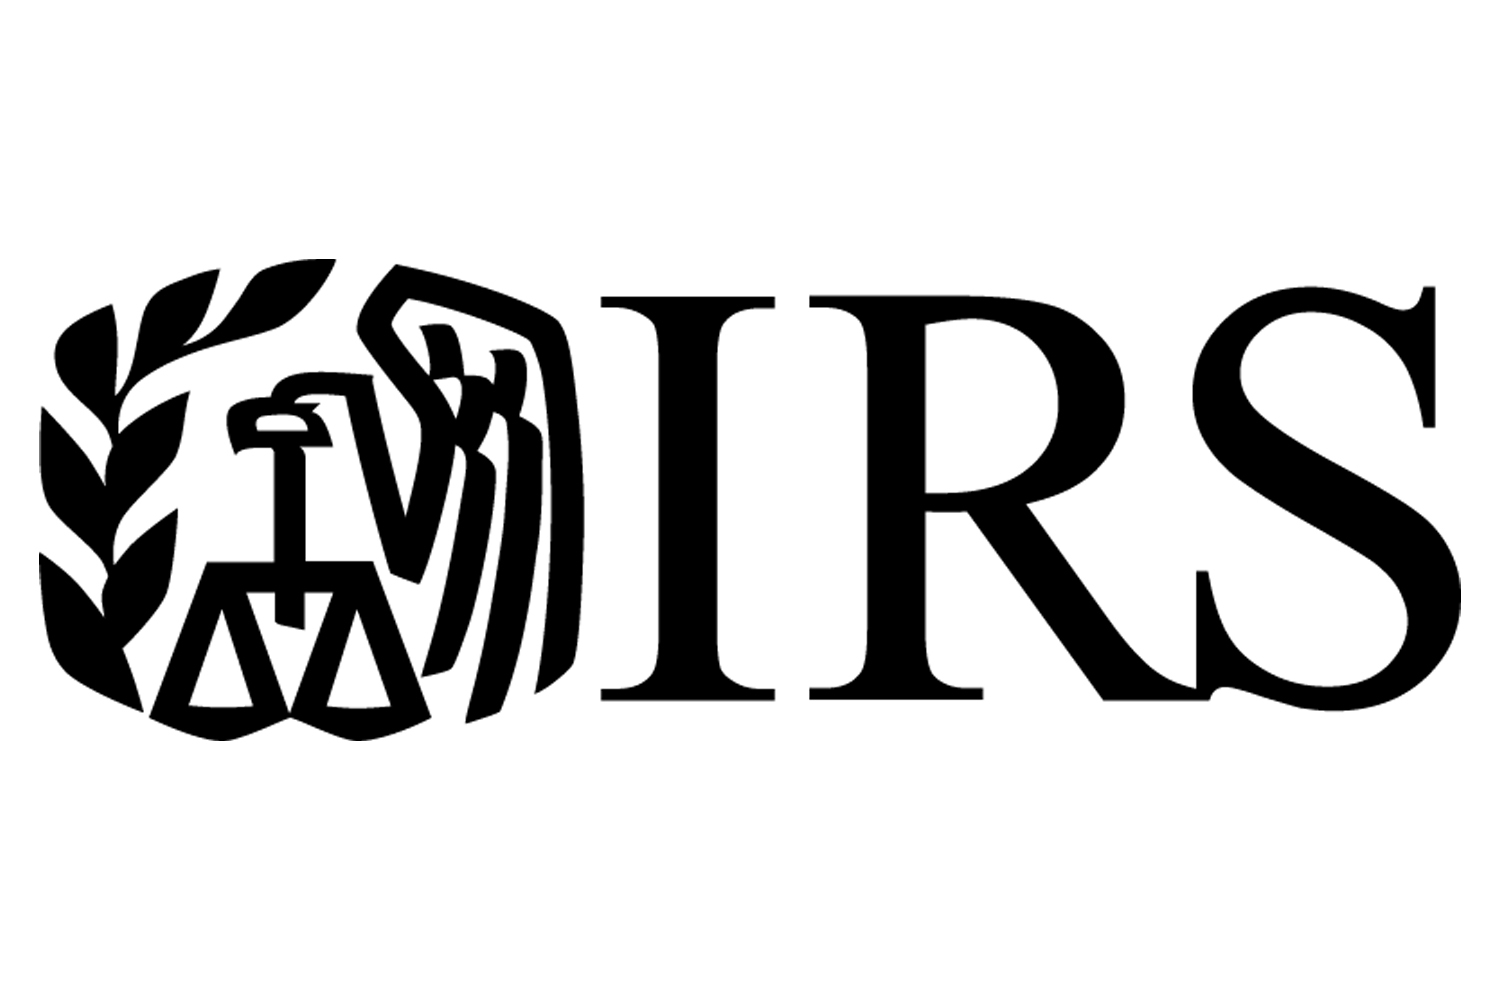 The IRS logo.